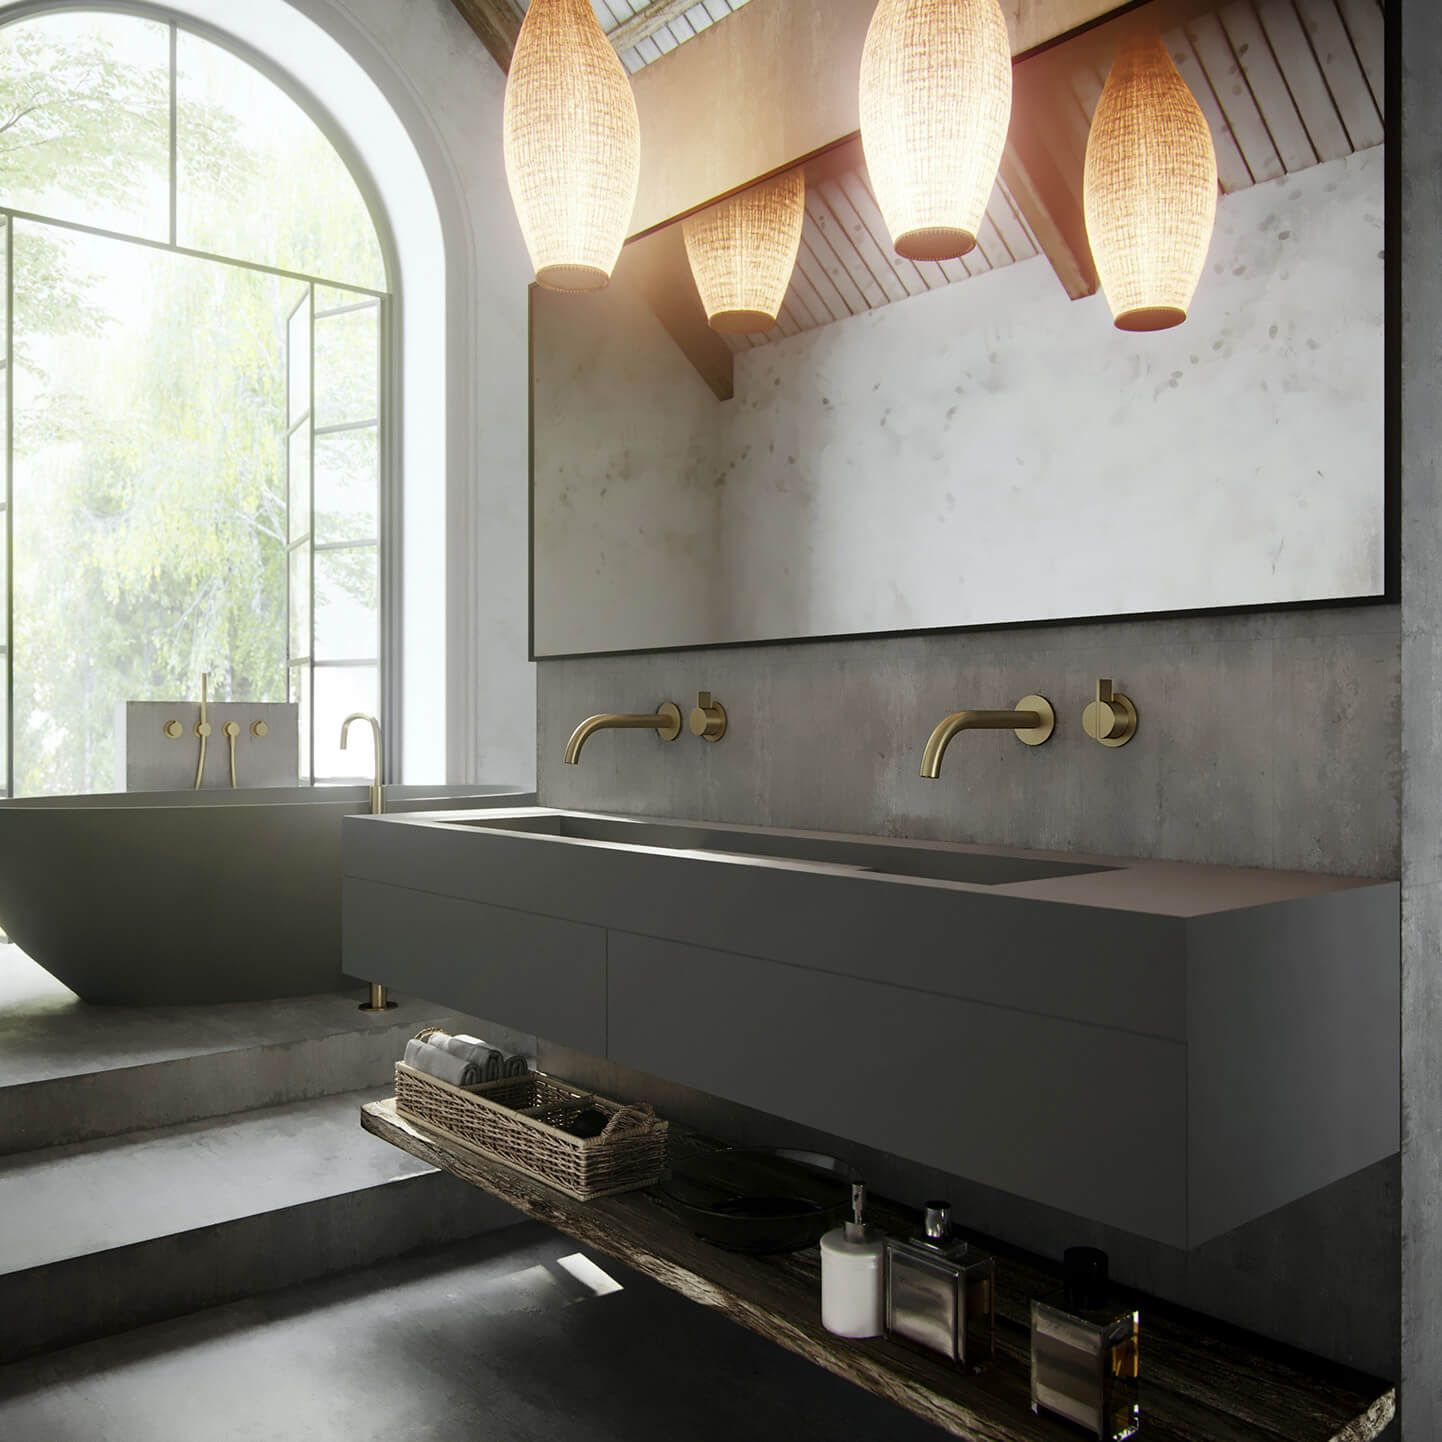 Wash basin and golden taps from bycocoon bathroom faucet